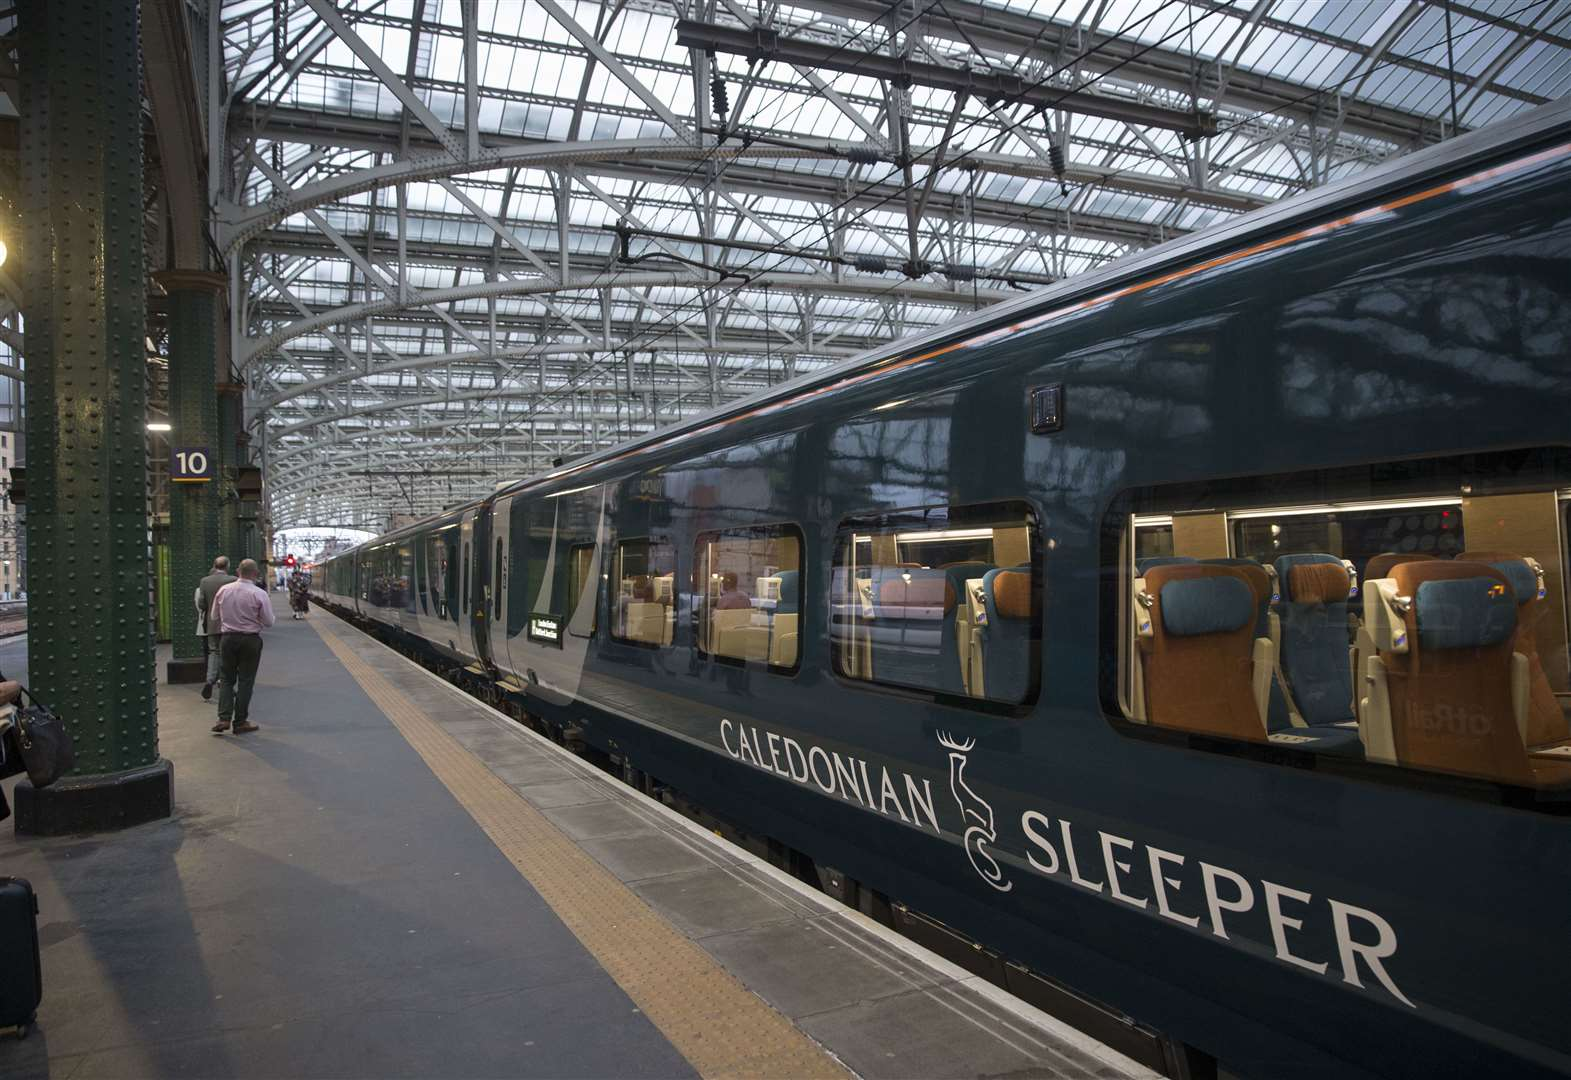 New carriages had been due to run on the Sleeper service from early next month.